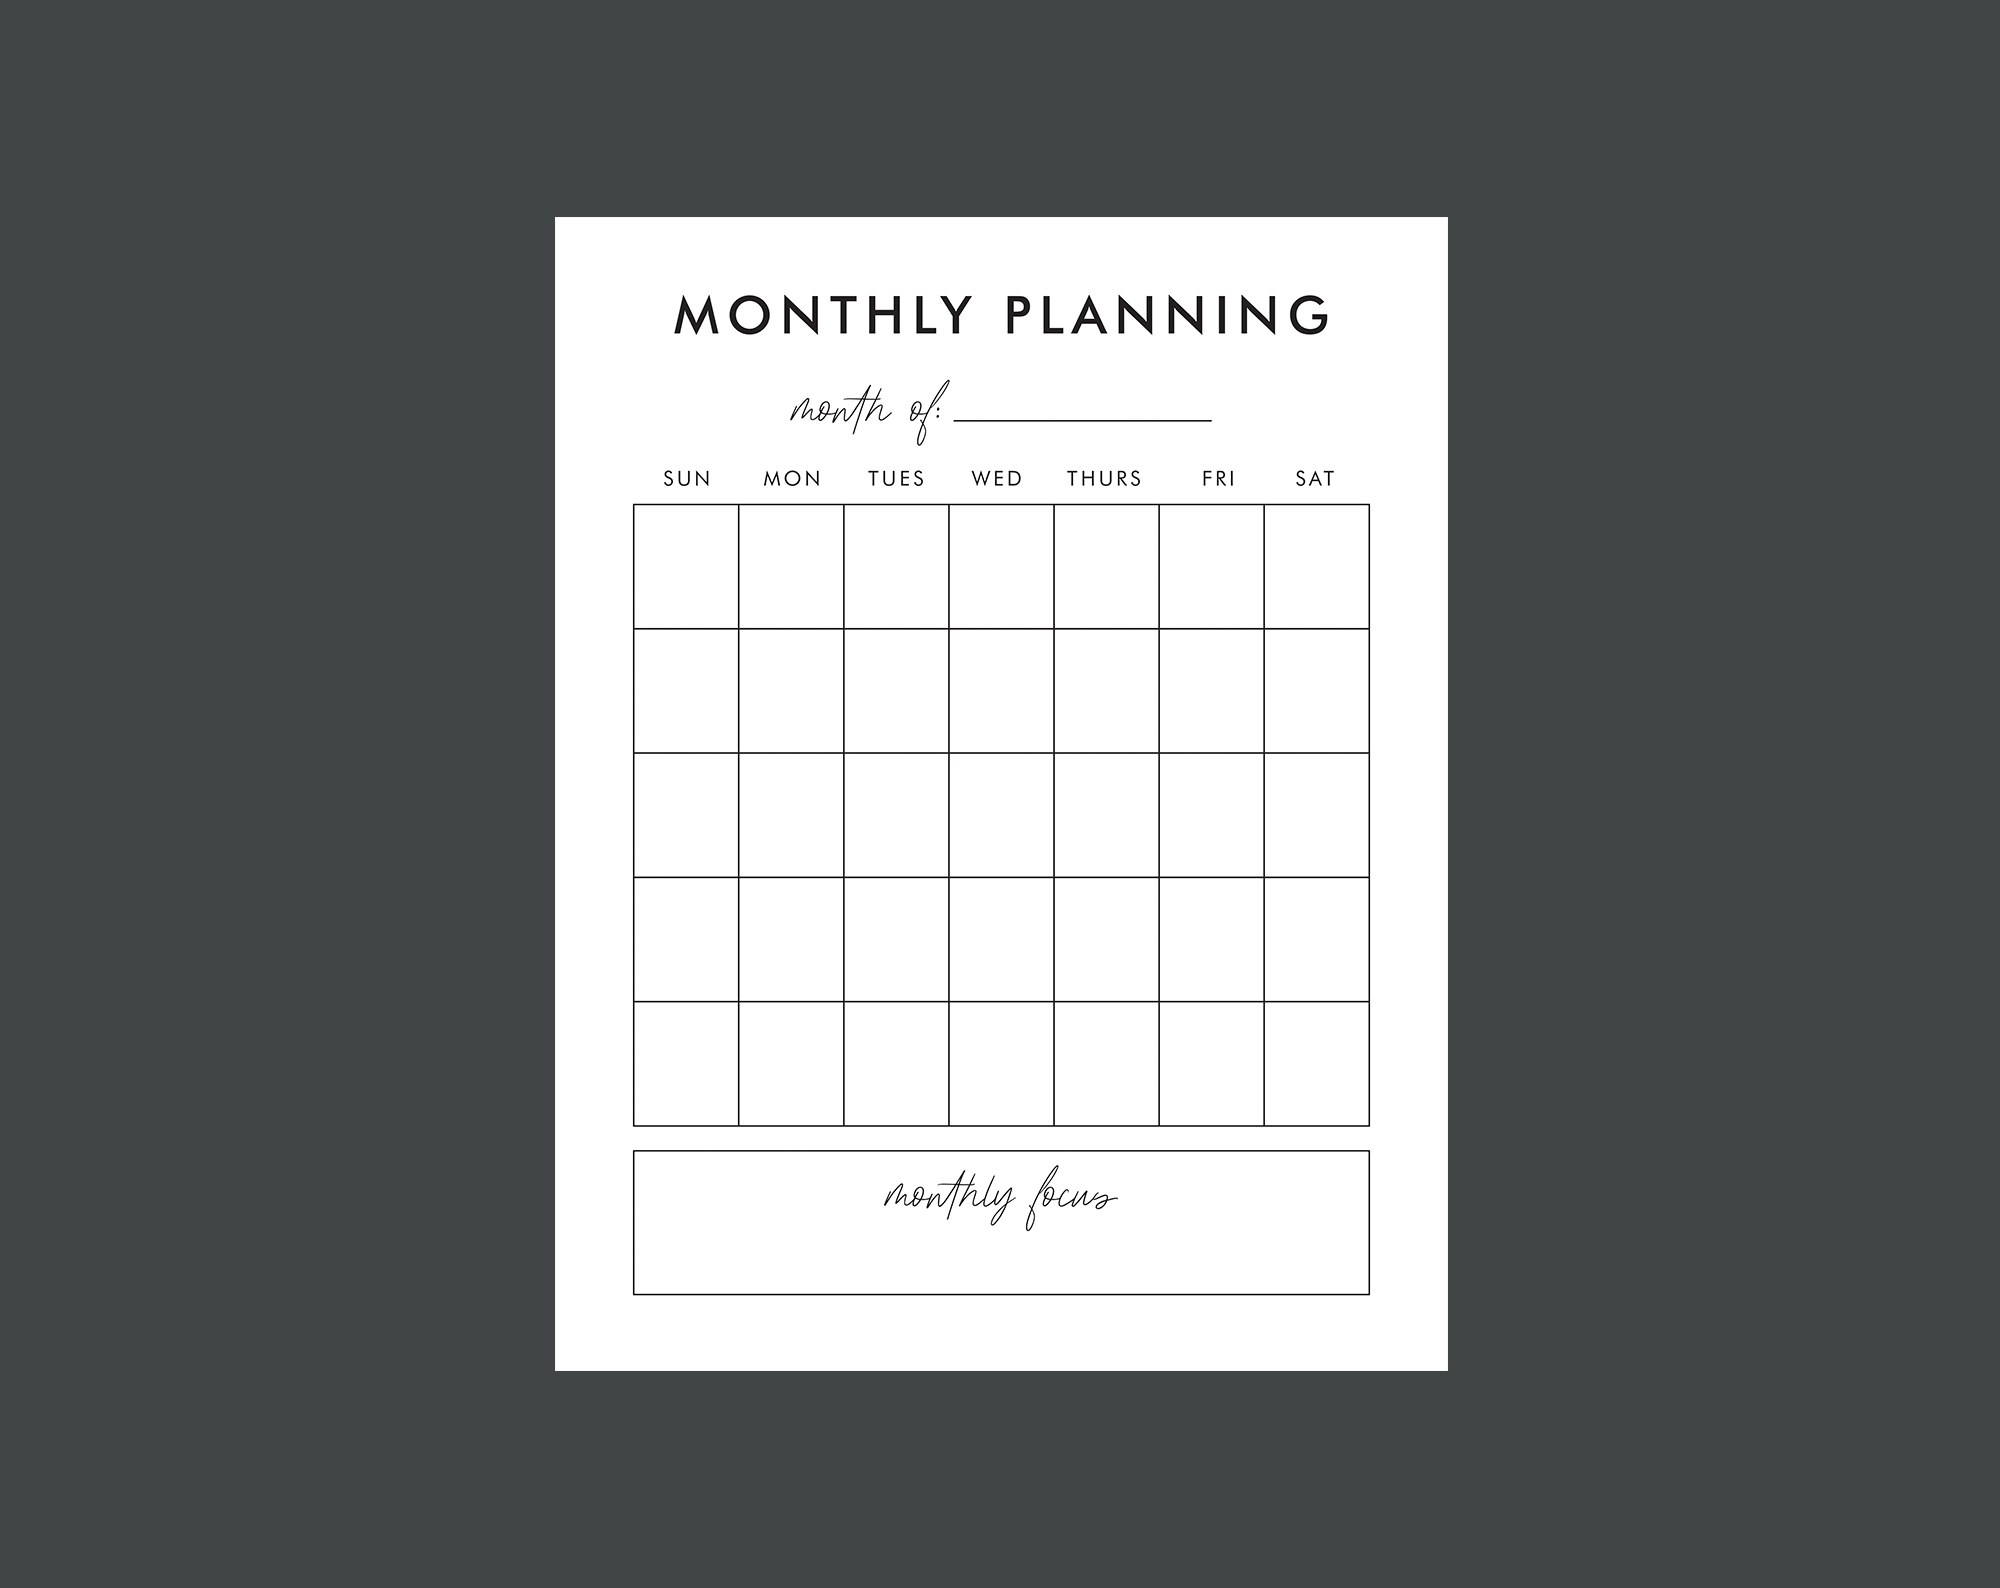 Monthly Planning Thumbnail.png